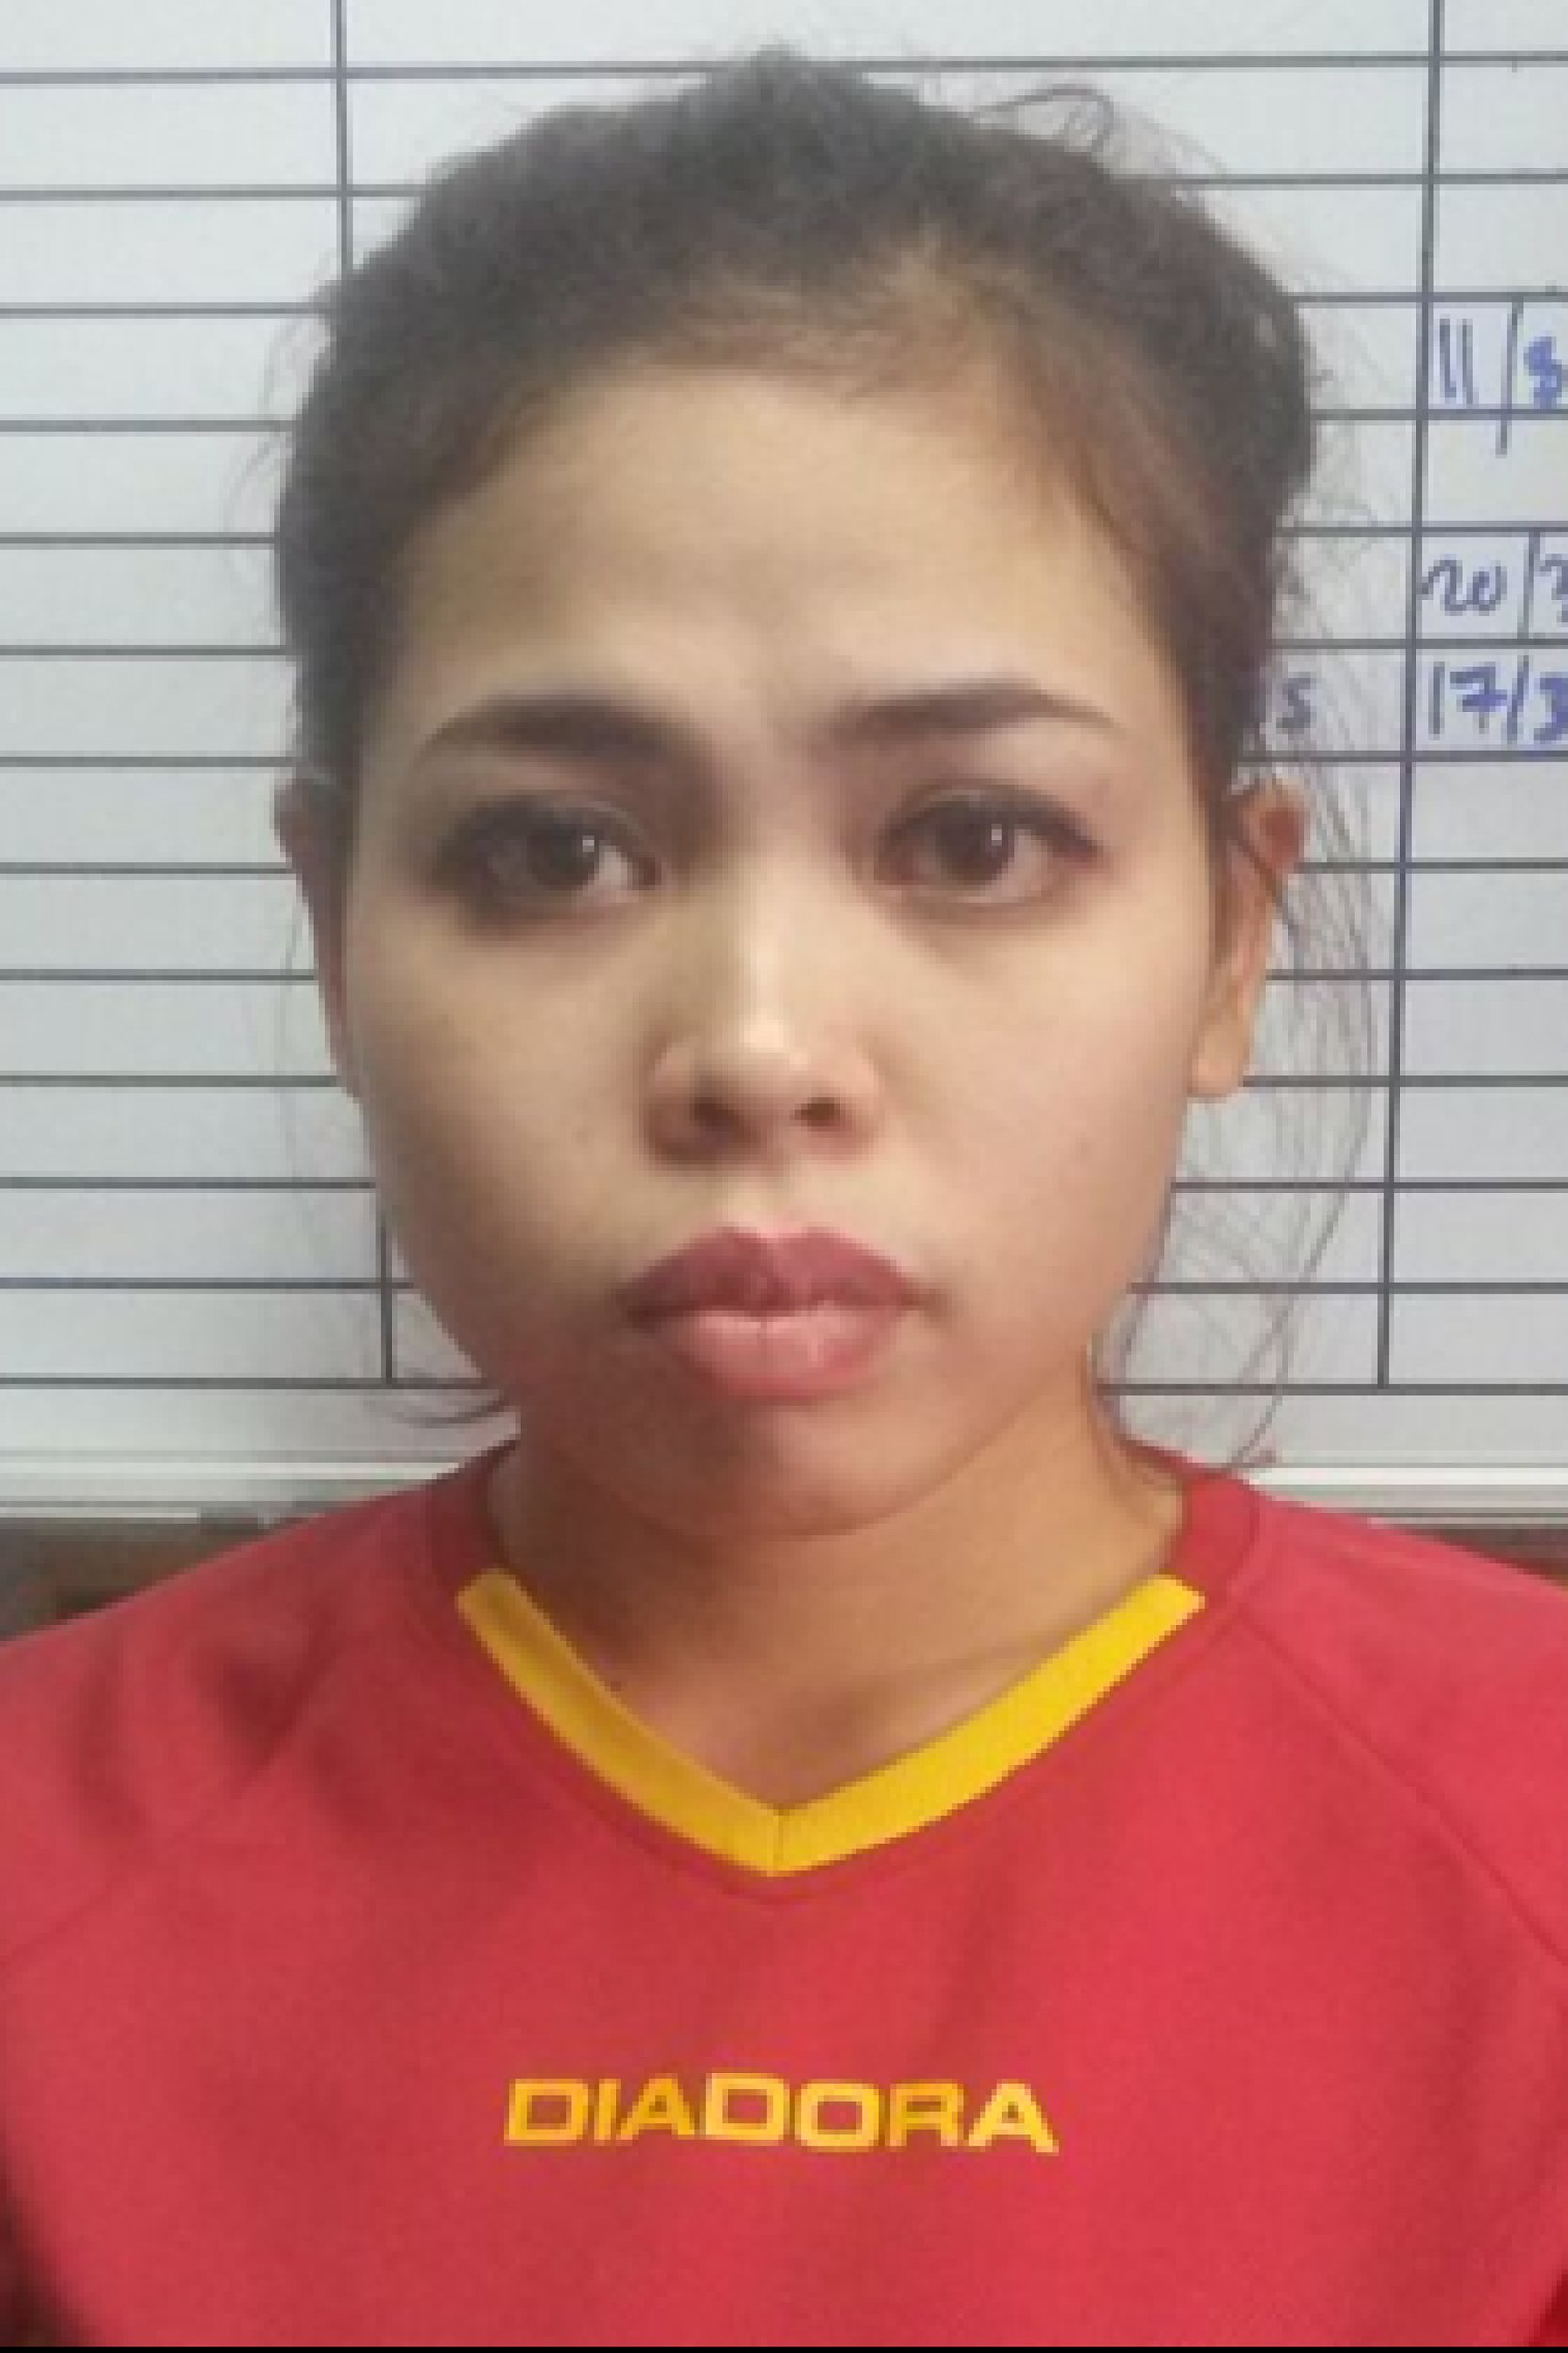 """This handout picture released by the Royal Malaysian Police in Kuala Lumpur on February 19, 2017 shows suspect Siti Aisyah of Indonesia, detained in connection to the February 13 assassination of Kim Jong-Nam, the half brother of North Korean leader Kim Jong-Un. Malaysian police said on February 19 they were seeking four more North Korean suspects in the February 13 assassination of Kim Jong-Un's half-brother at Kuala Lumpur's main airport, but the four had already left the country. / AFP PHOTO / Royal Malaysian Police / Handout / -----EDITORS NOTE --- RESTRICTED TO EDITORIAL USE - MANDATORY CREDIT """"AFP PHOTO / Royal Malaysian Police"""" - NO MARKETING - NO ADVERTISING CAMPAIGNS - DISTRIBUTED AS A SERVICE TO CLIENTSHANDOUT/AFP/Getty Images"""